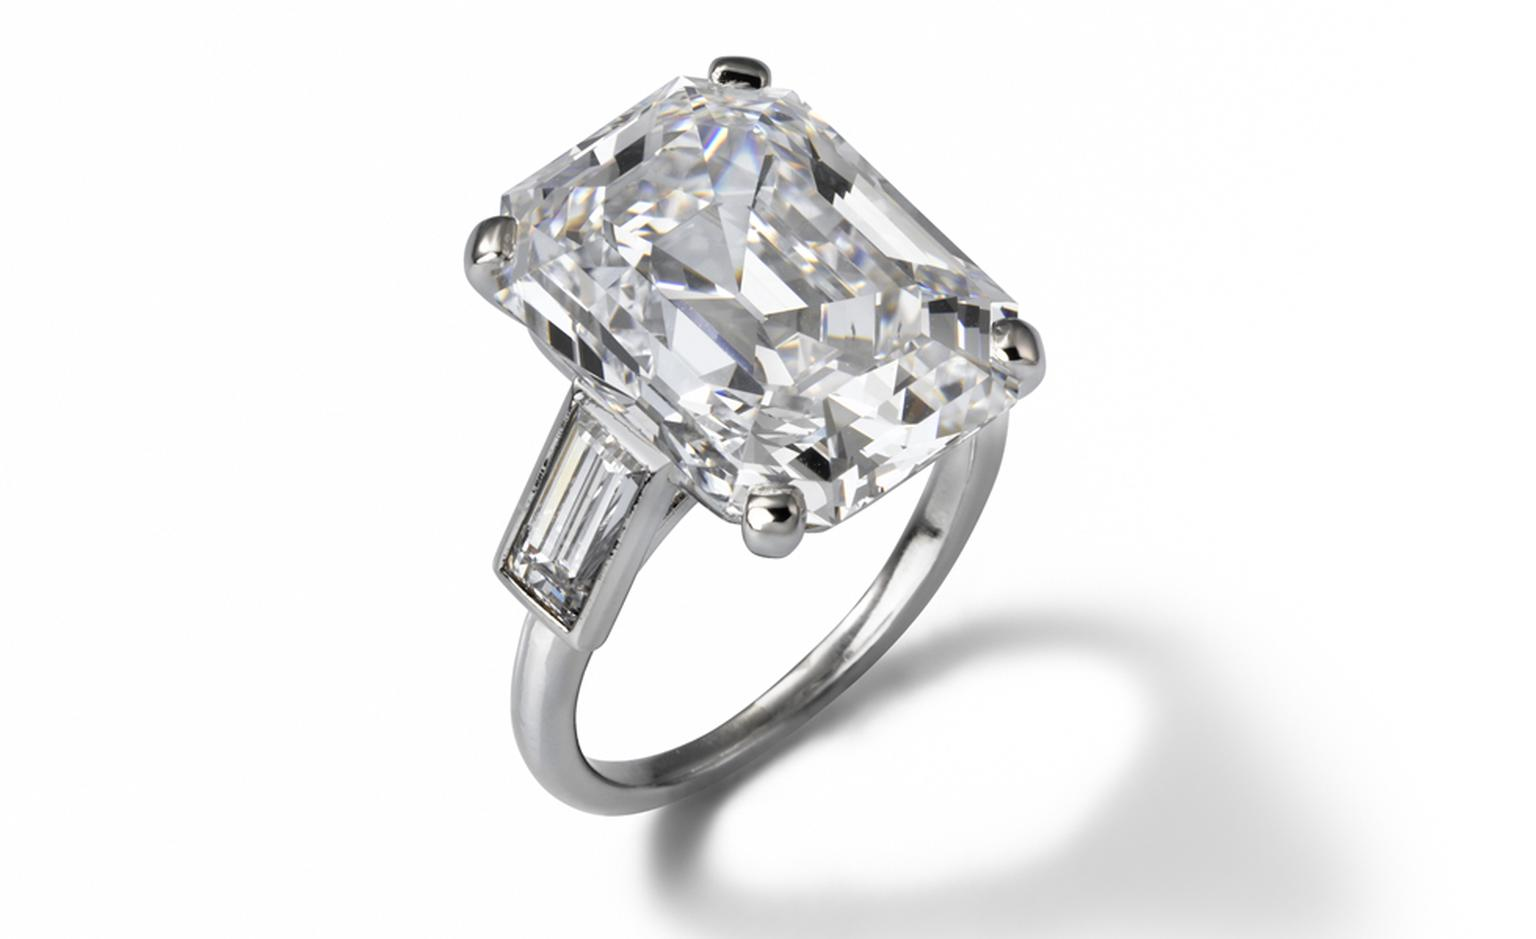 Grace Kellys Engagement Ring The Jewellery Editor